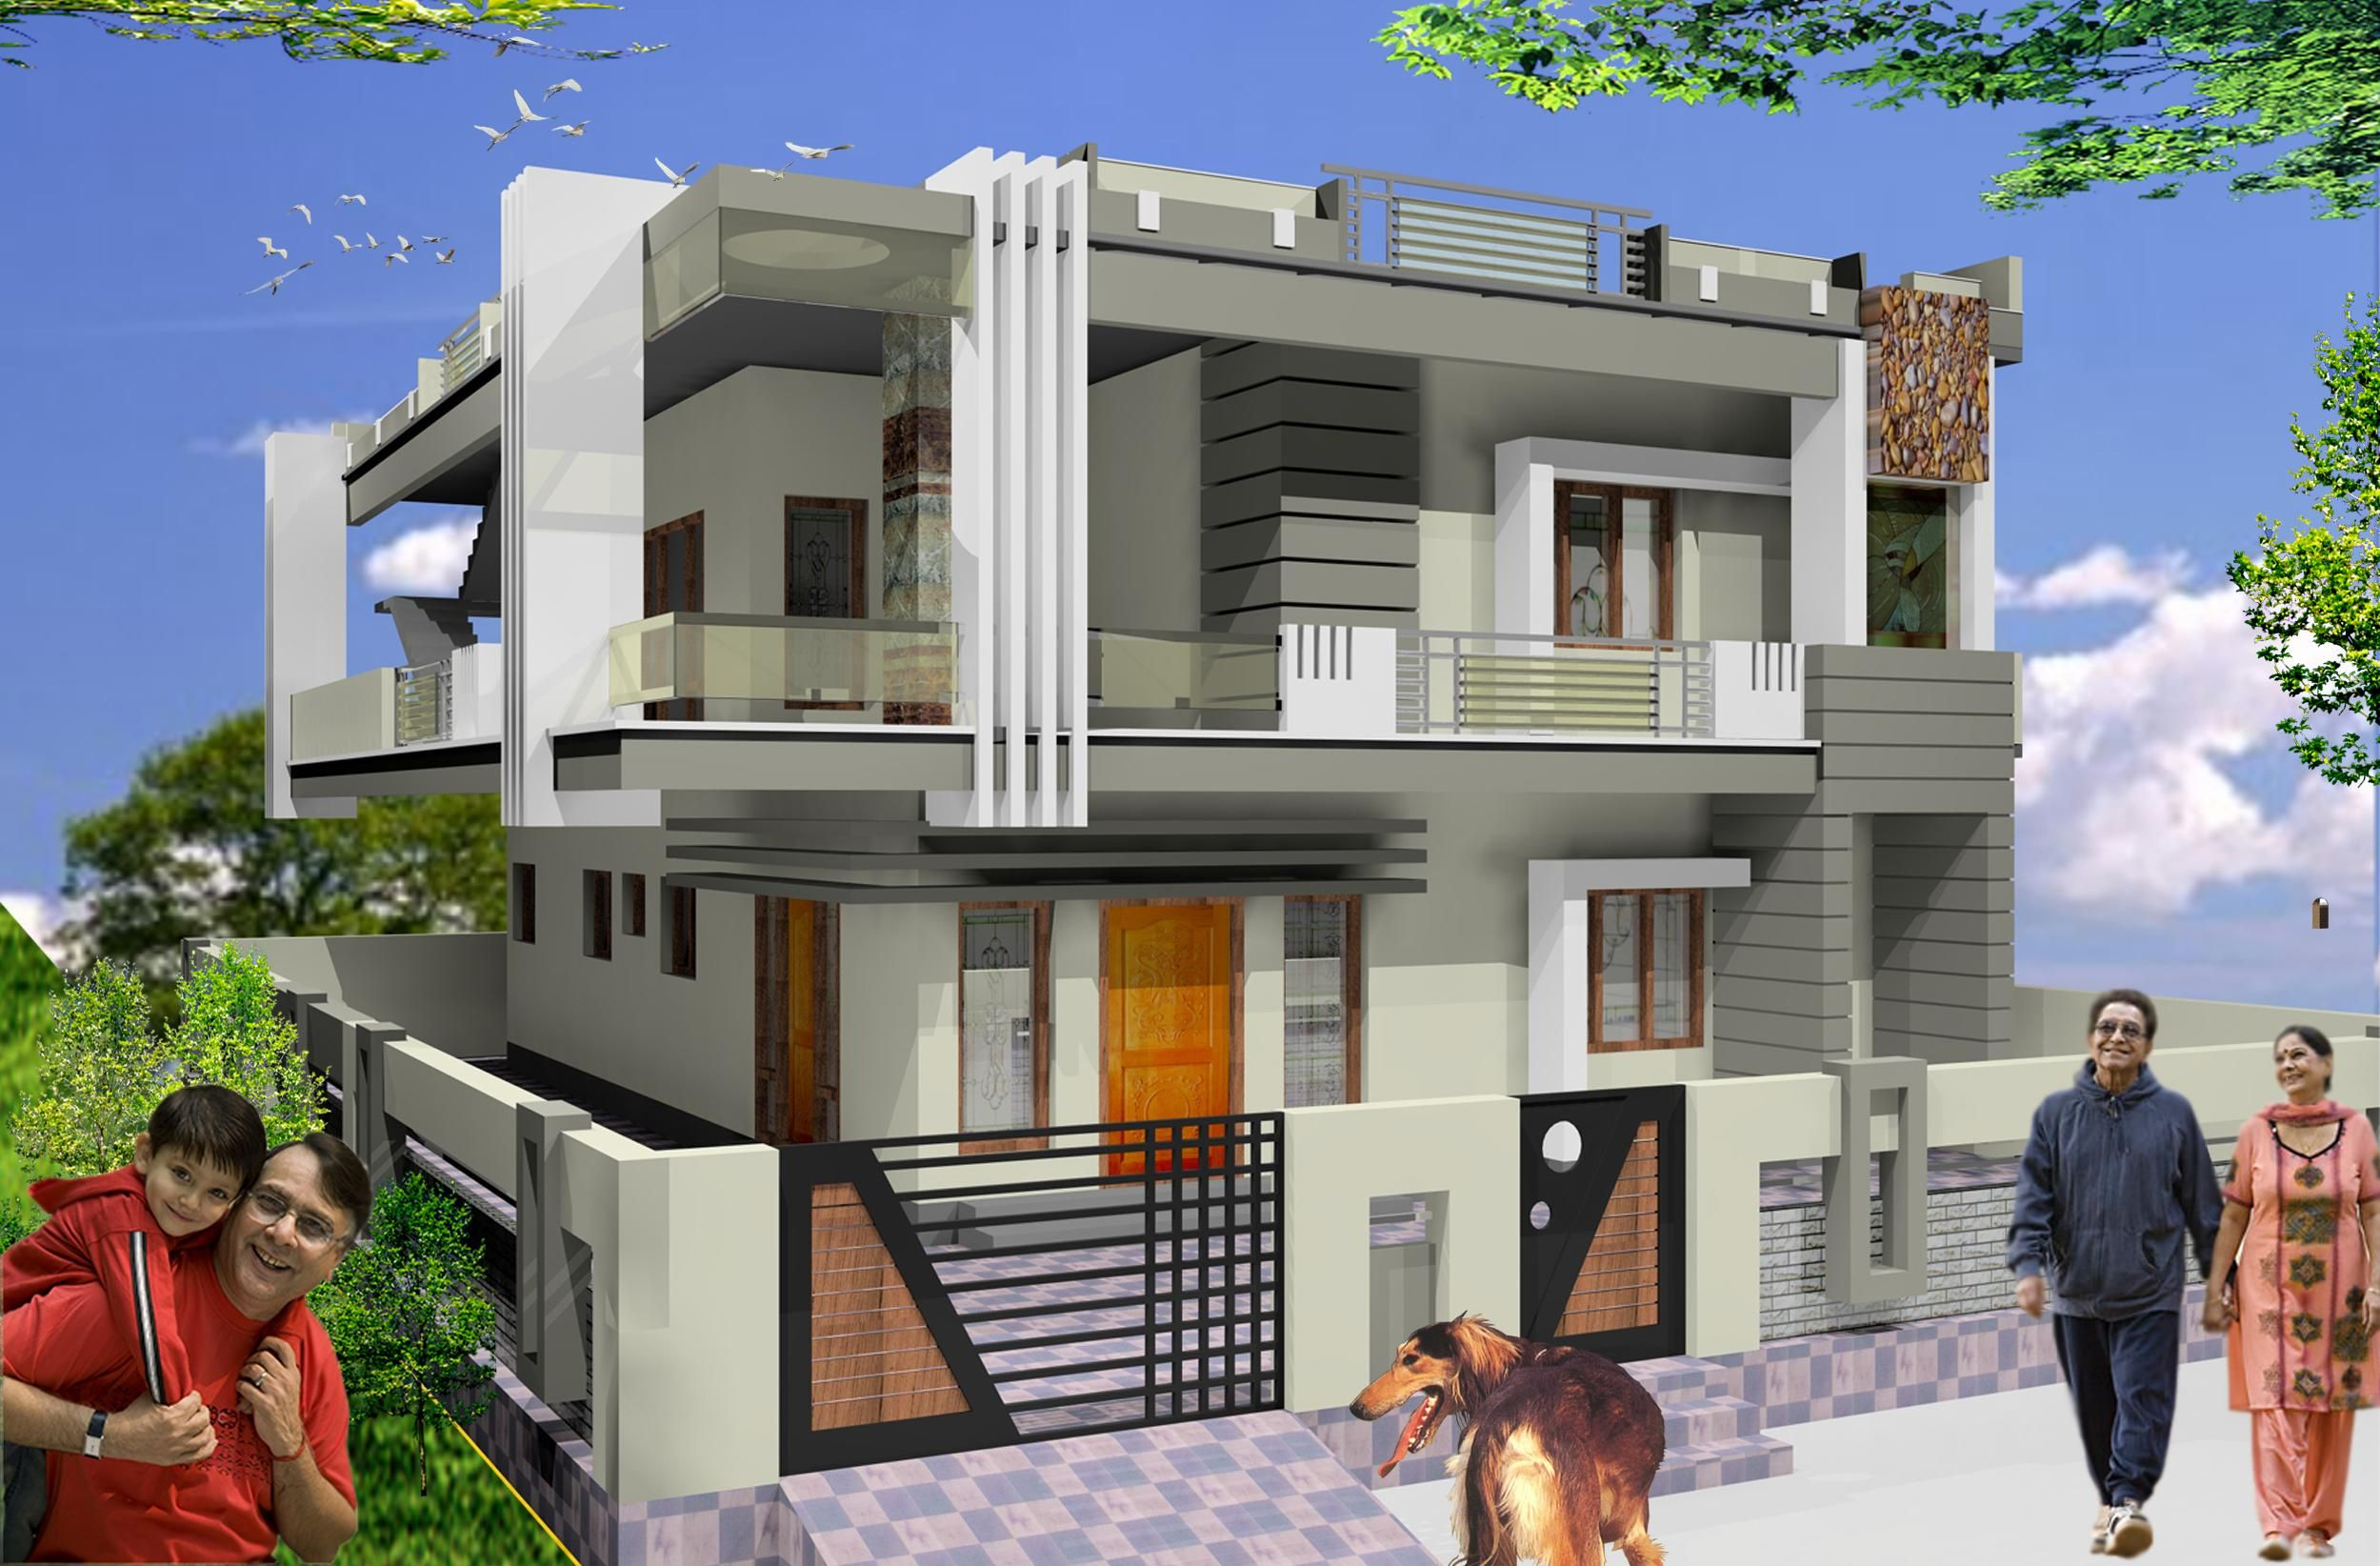 Front Design Of House Double Storey Part - 38: ICYMI: Front Design Of House Double Storey